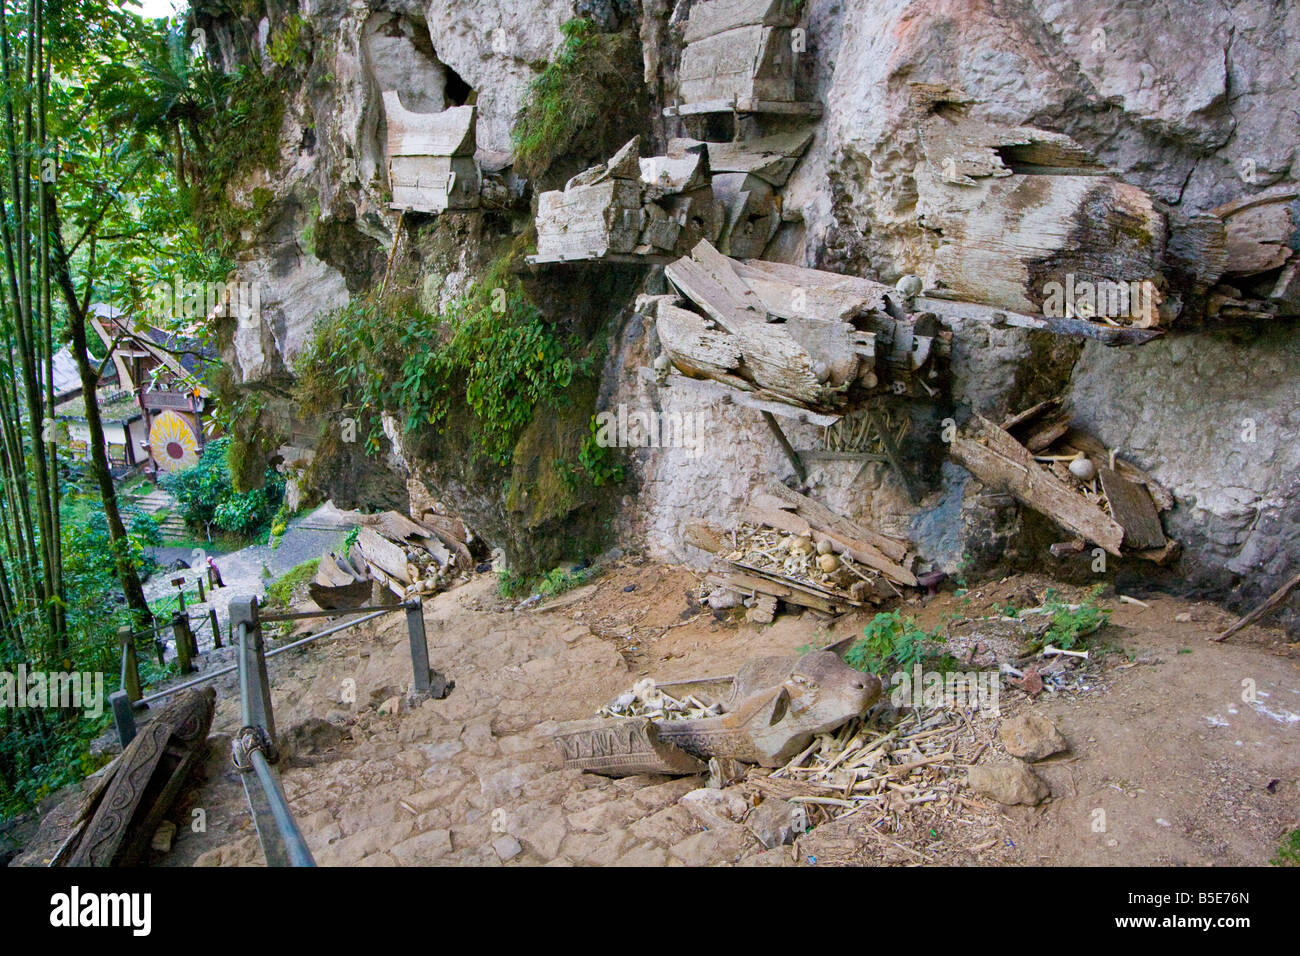 Cave Cemeteries at Kete Kesu in Tana Toraja on Sulawesi in Indonesia - Stock Image